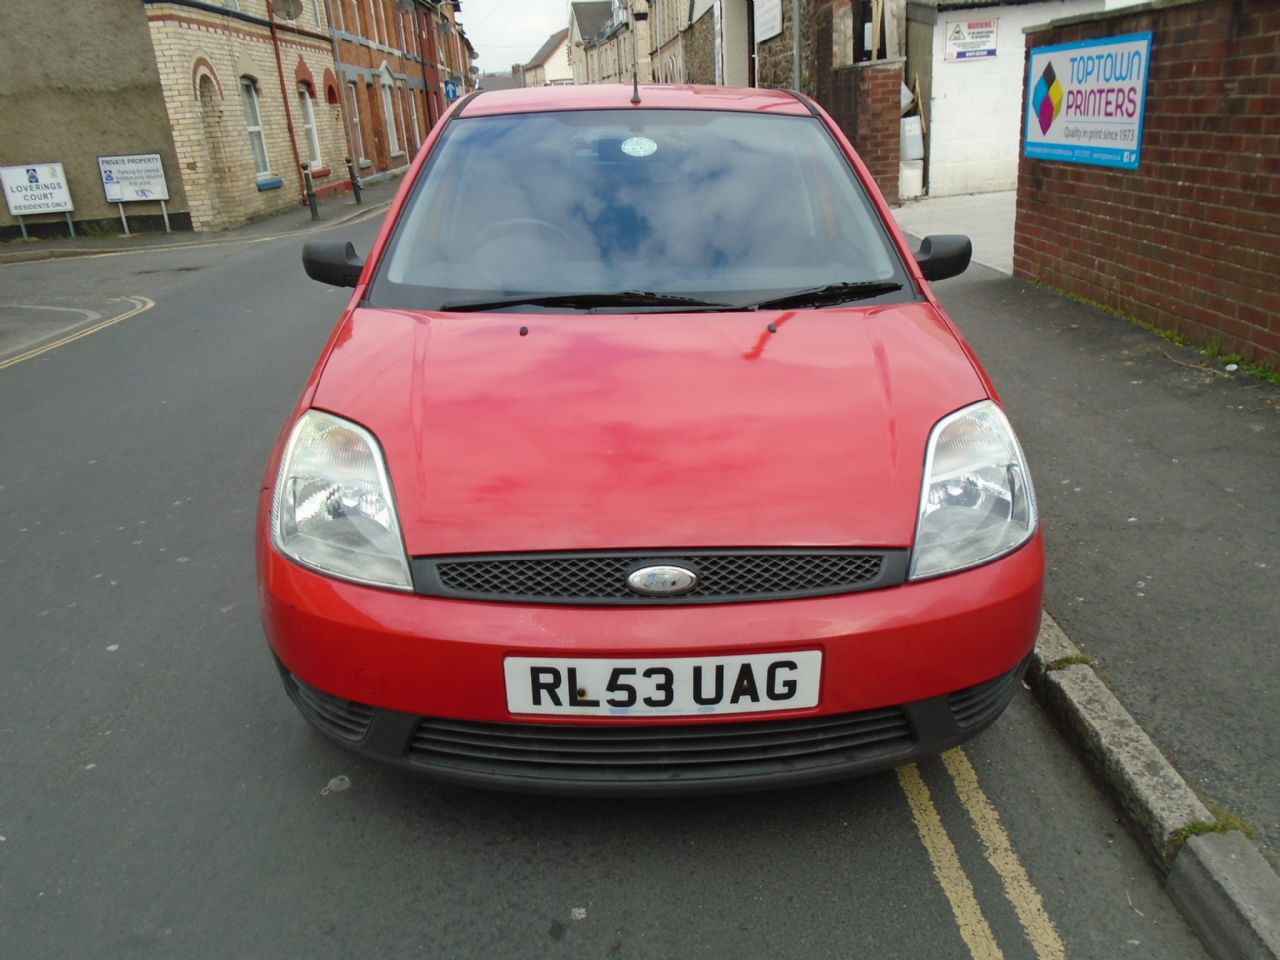 FORD FIESTA 1.4i 16v LX A/C - Picture 2